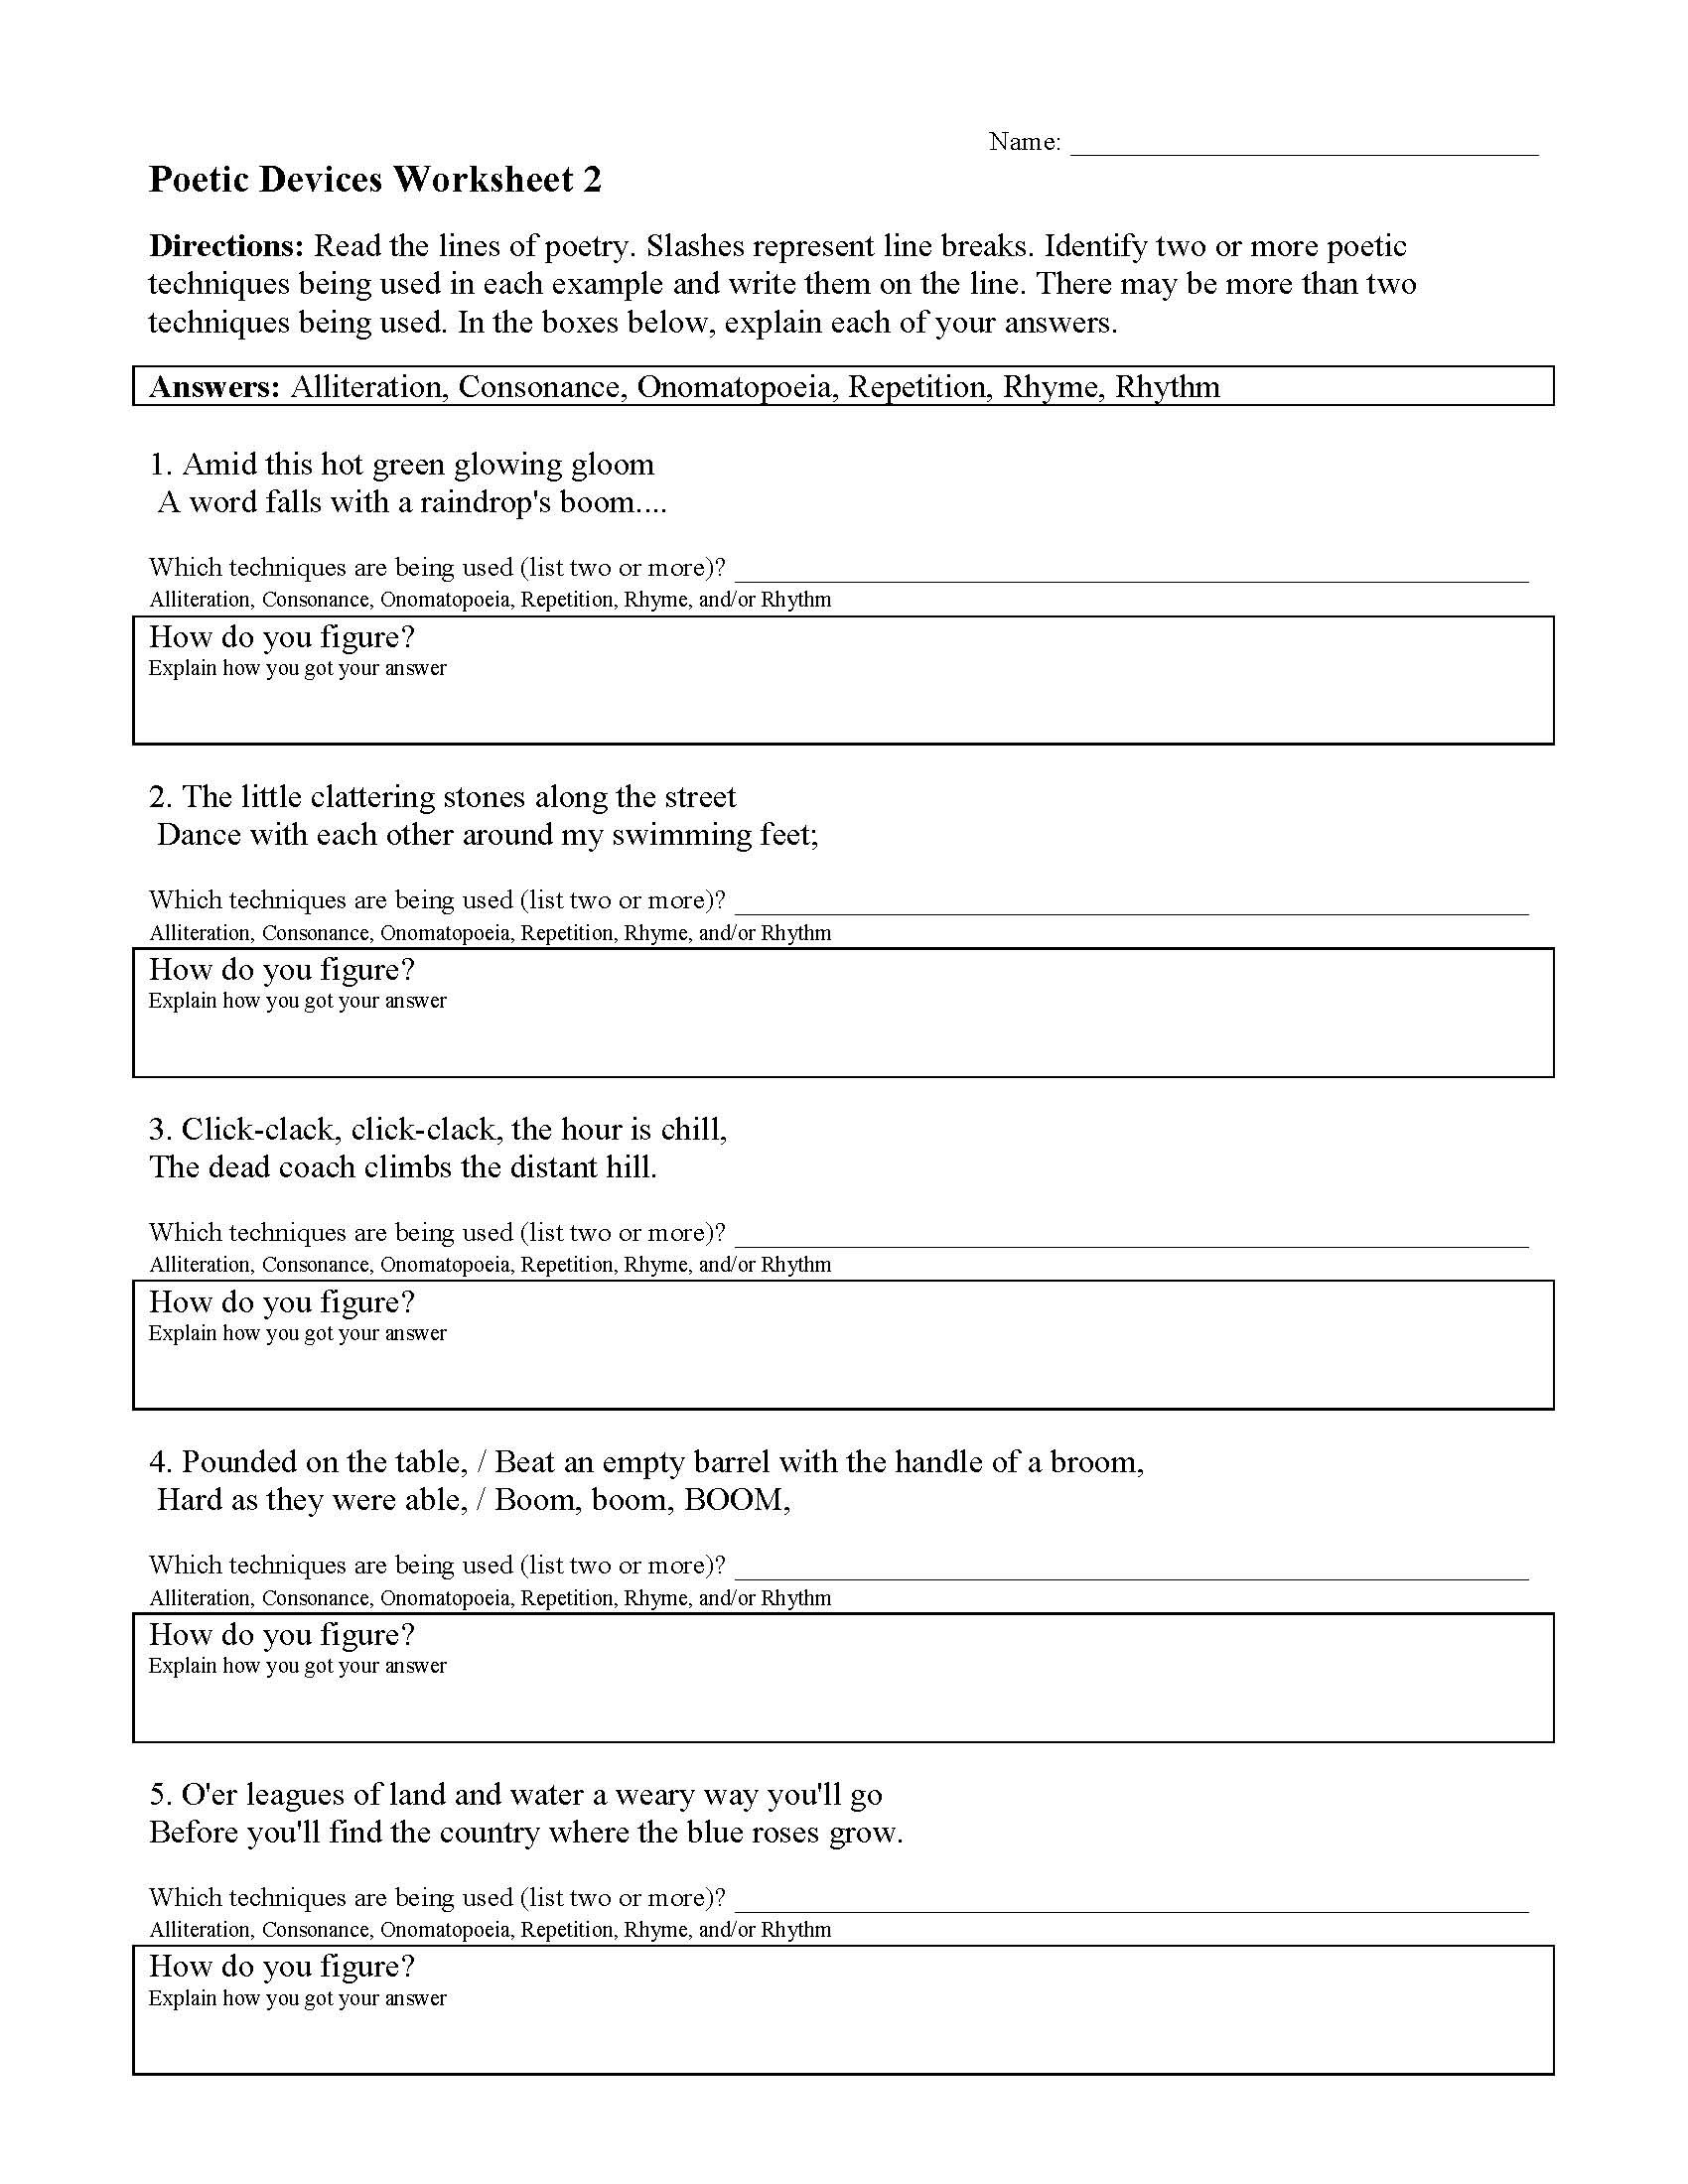 hight resolution of 32 Sound Devices In Poetry Worksheet - Worksheet Project List